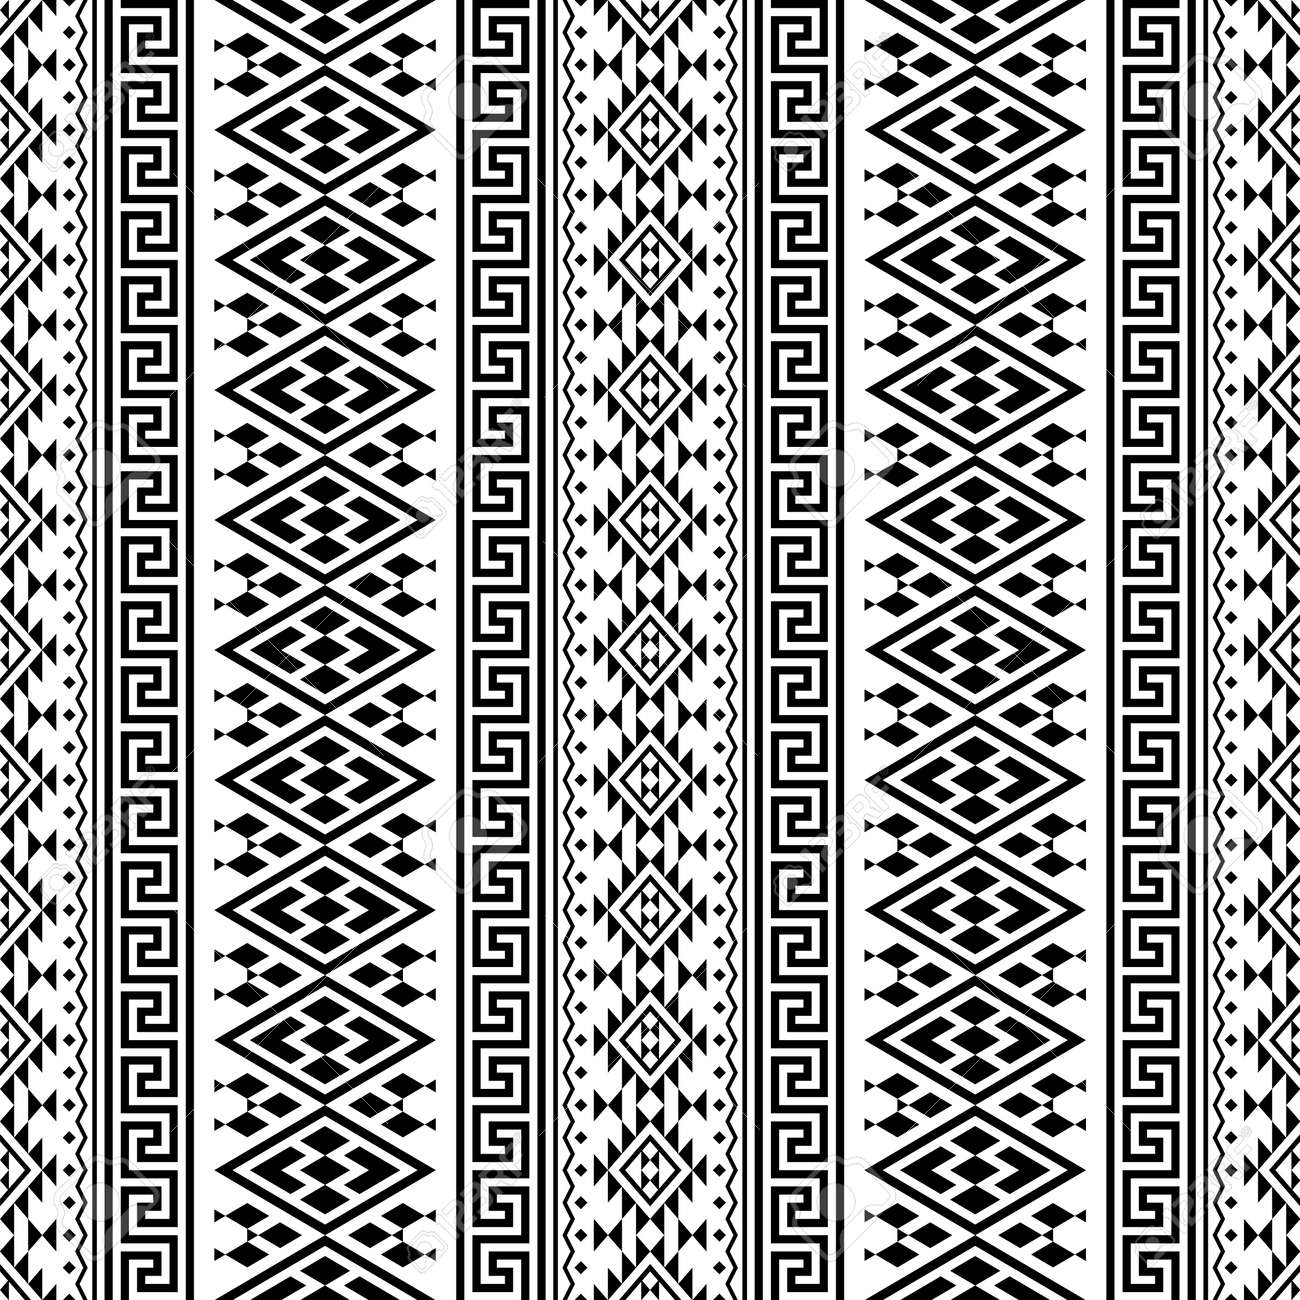 Seamless ethnic pattern texture background design in black white color - 155136491